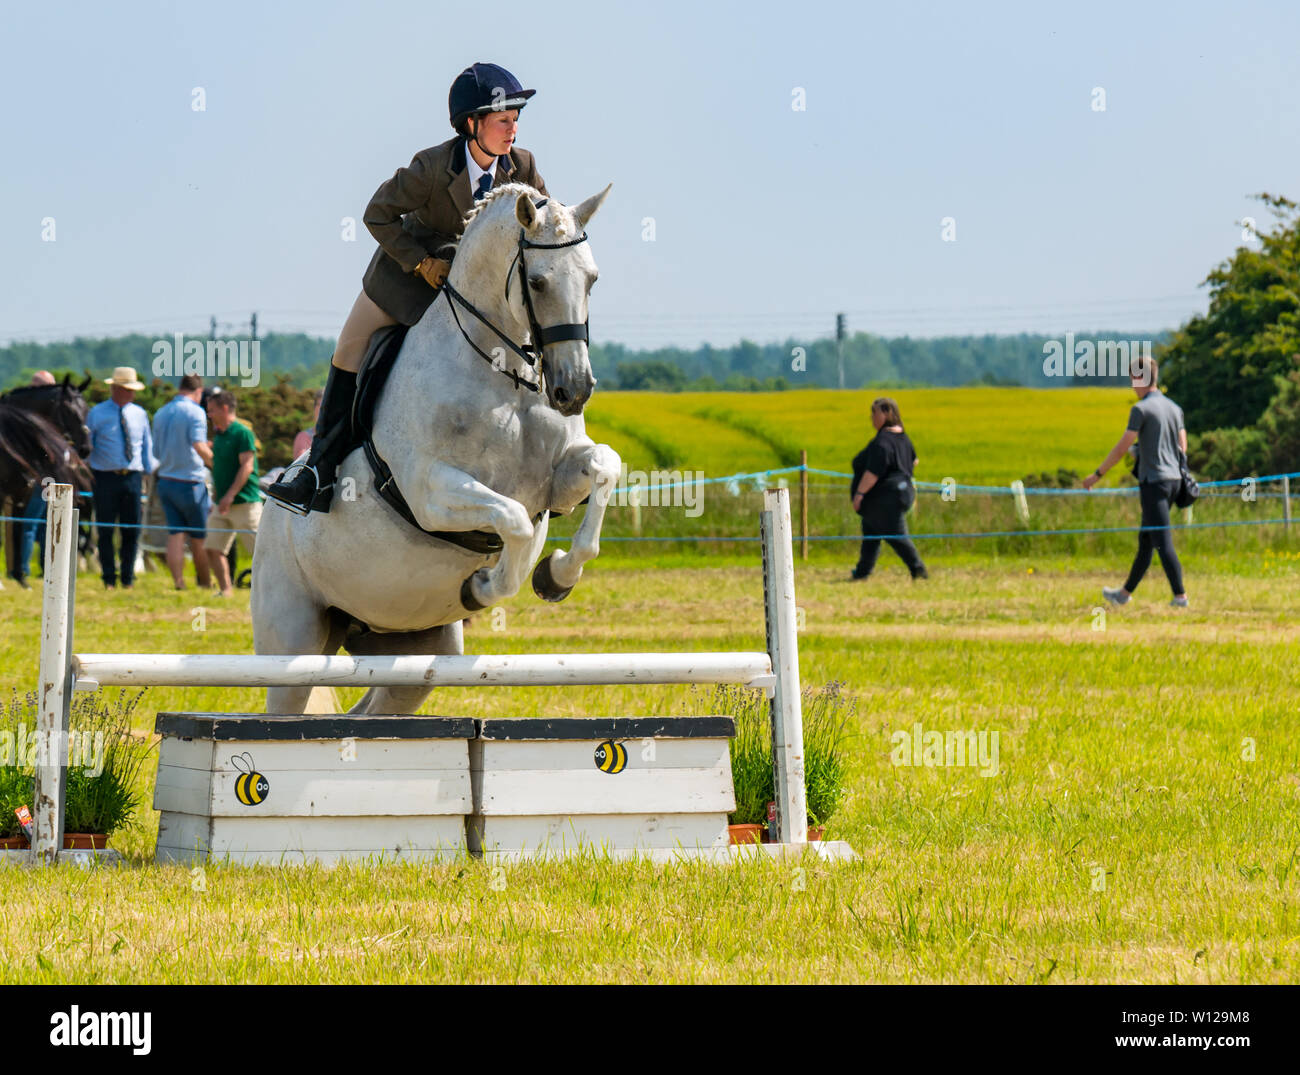 East Fortune, East Lothian, Scotland, United Kingdom. 29th June, 2019. Haddington Show: Haddington Show has taken place annually since 1804, held by the United East Lothian Agricultural Society. Traditional events include horse show jumping. A horse jumping over a fence - Stock Image